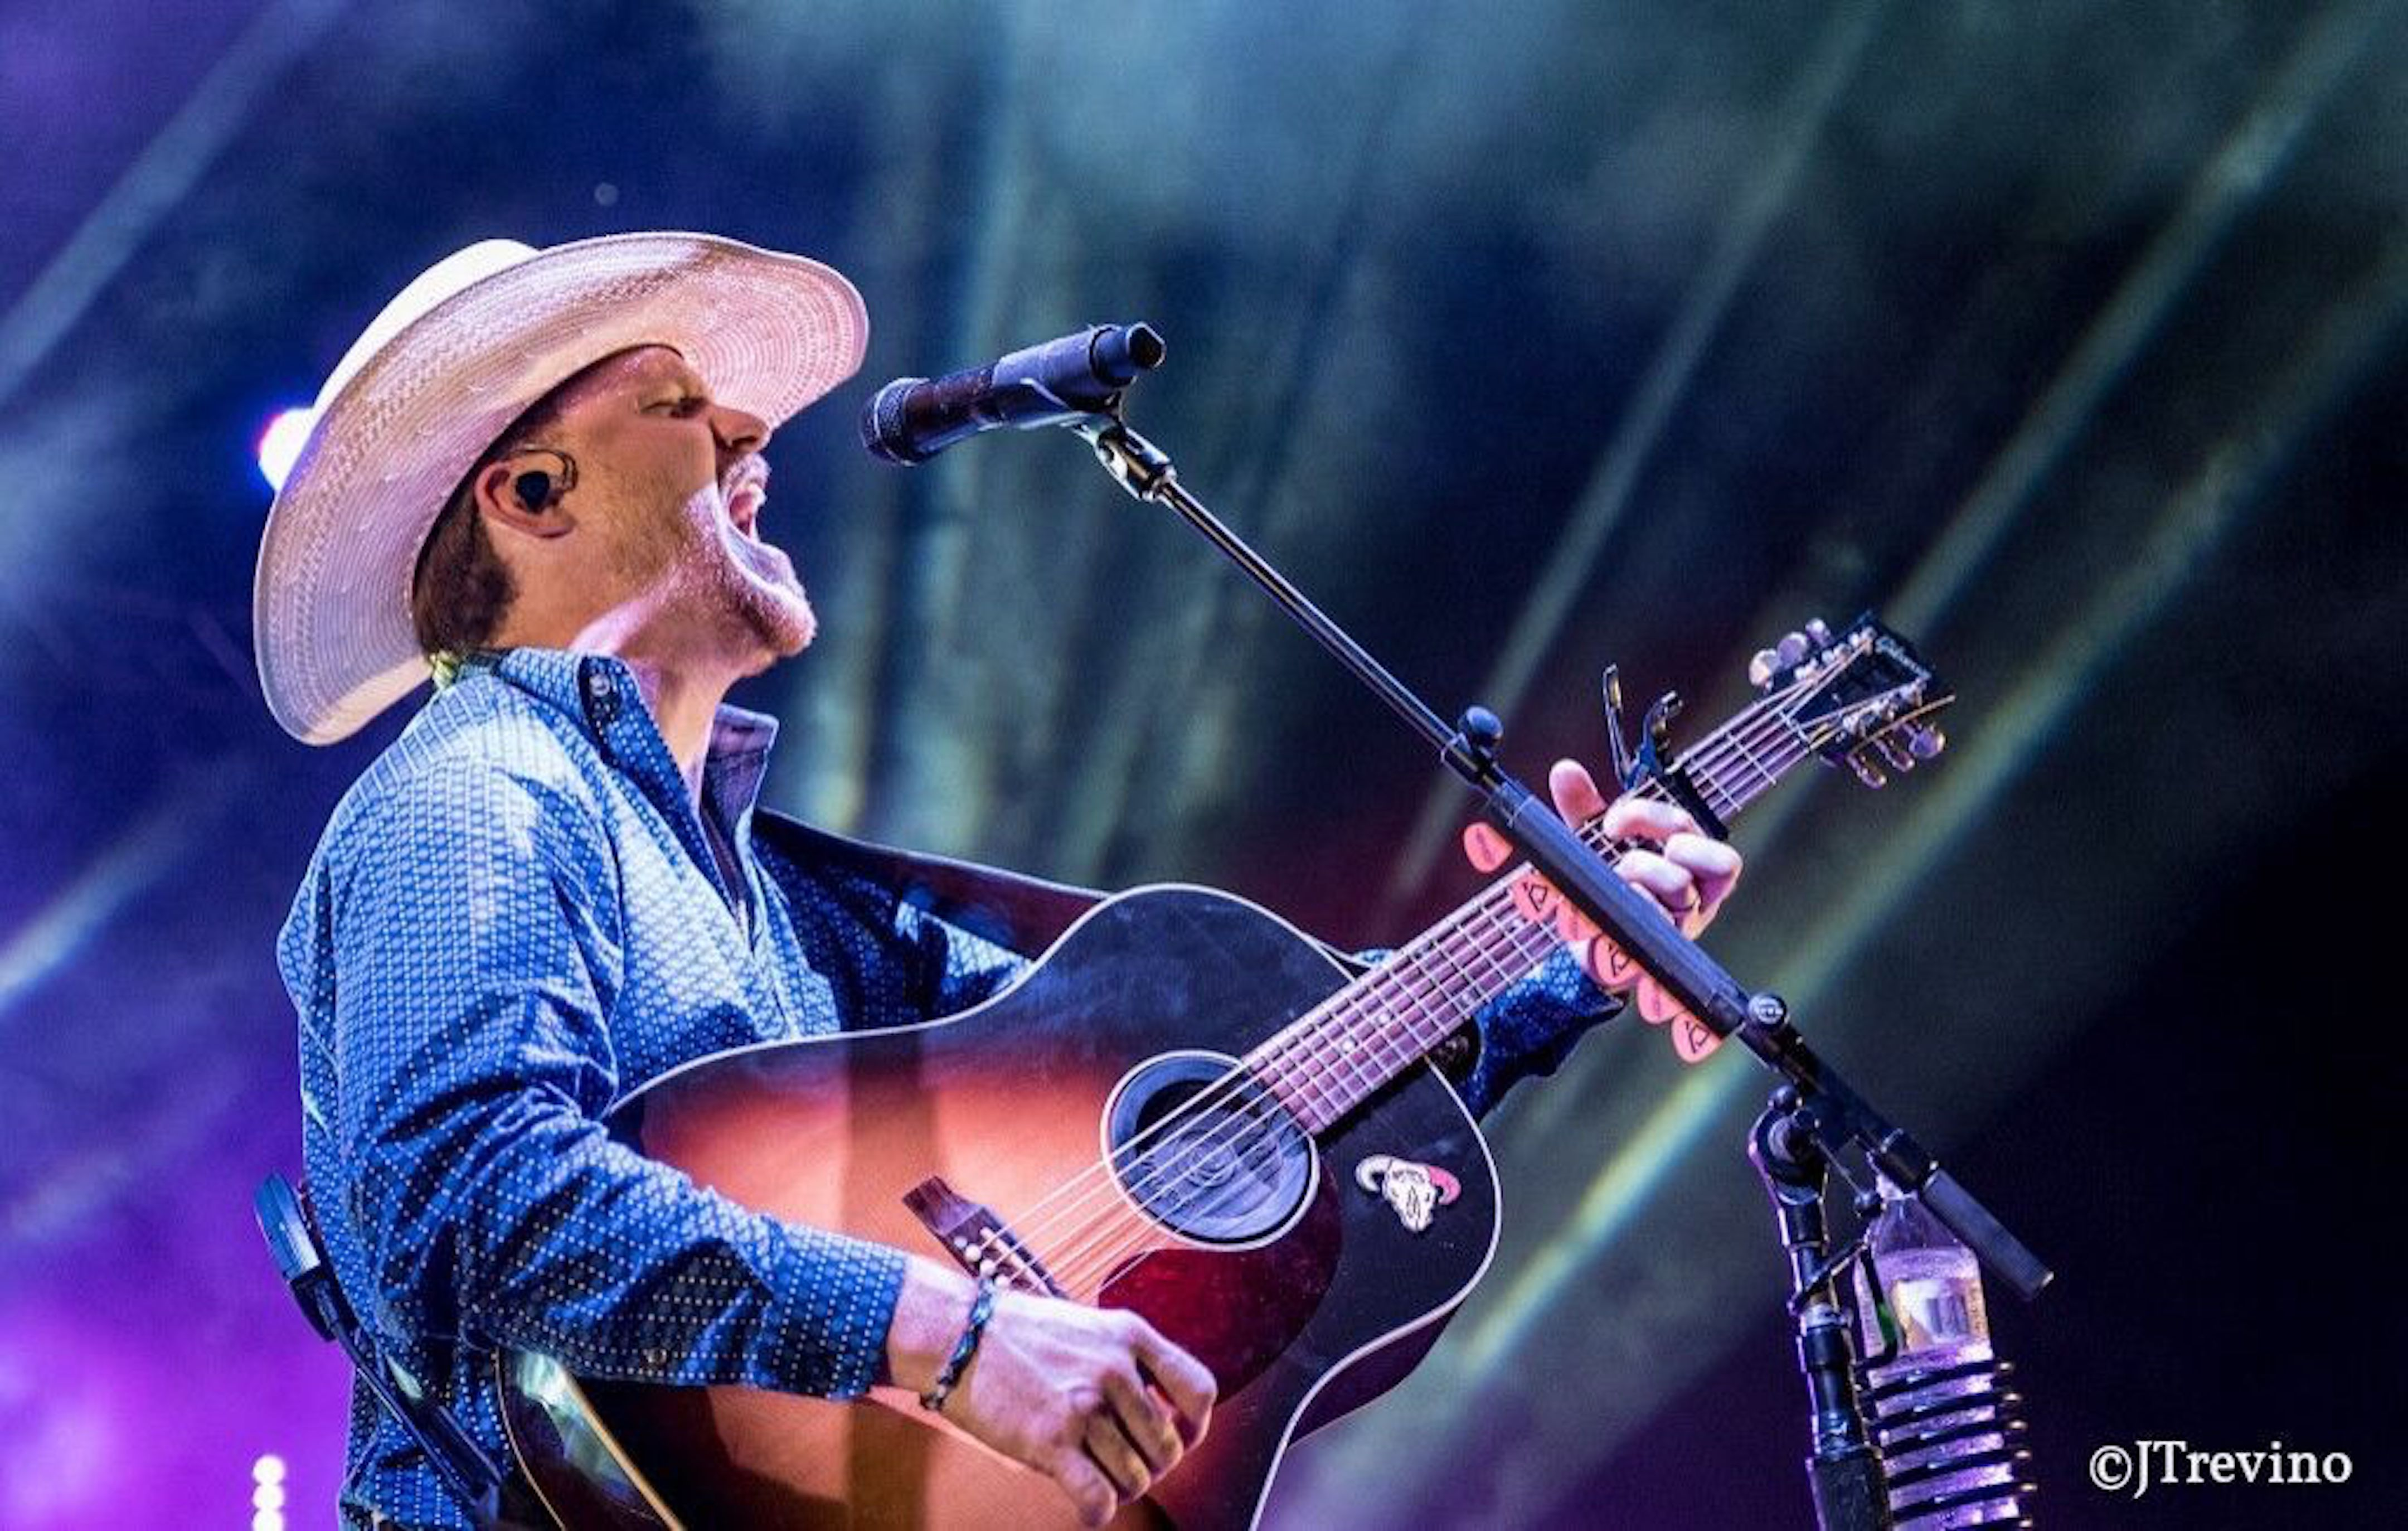 CODY JOHNSON MOST STREAMED INDIE COUNTRY ACT OF 2017 JUST BEHIND GARTH BROOKS, JEWEL AND THE DIXIE CHICKS